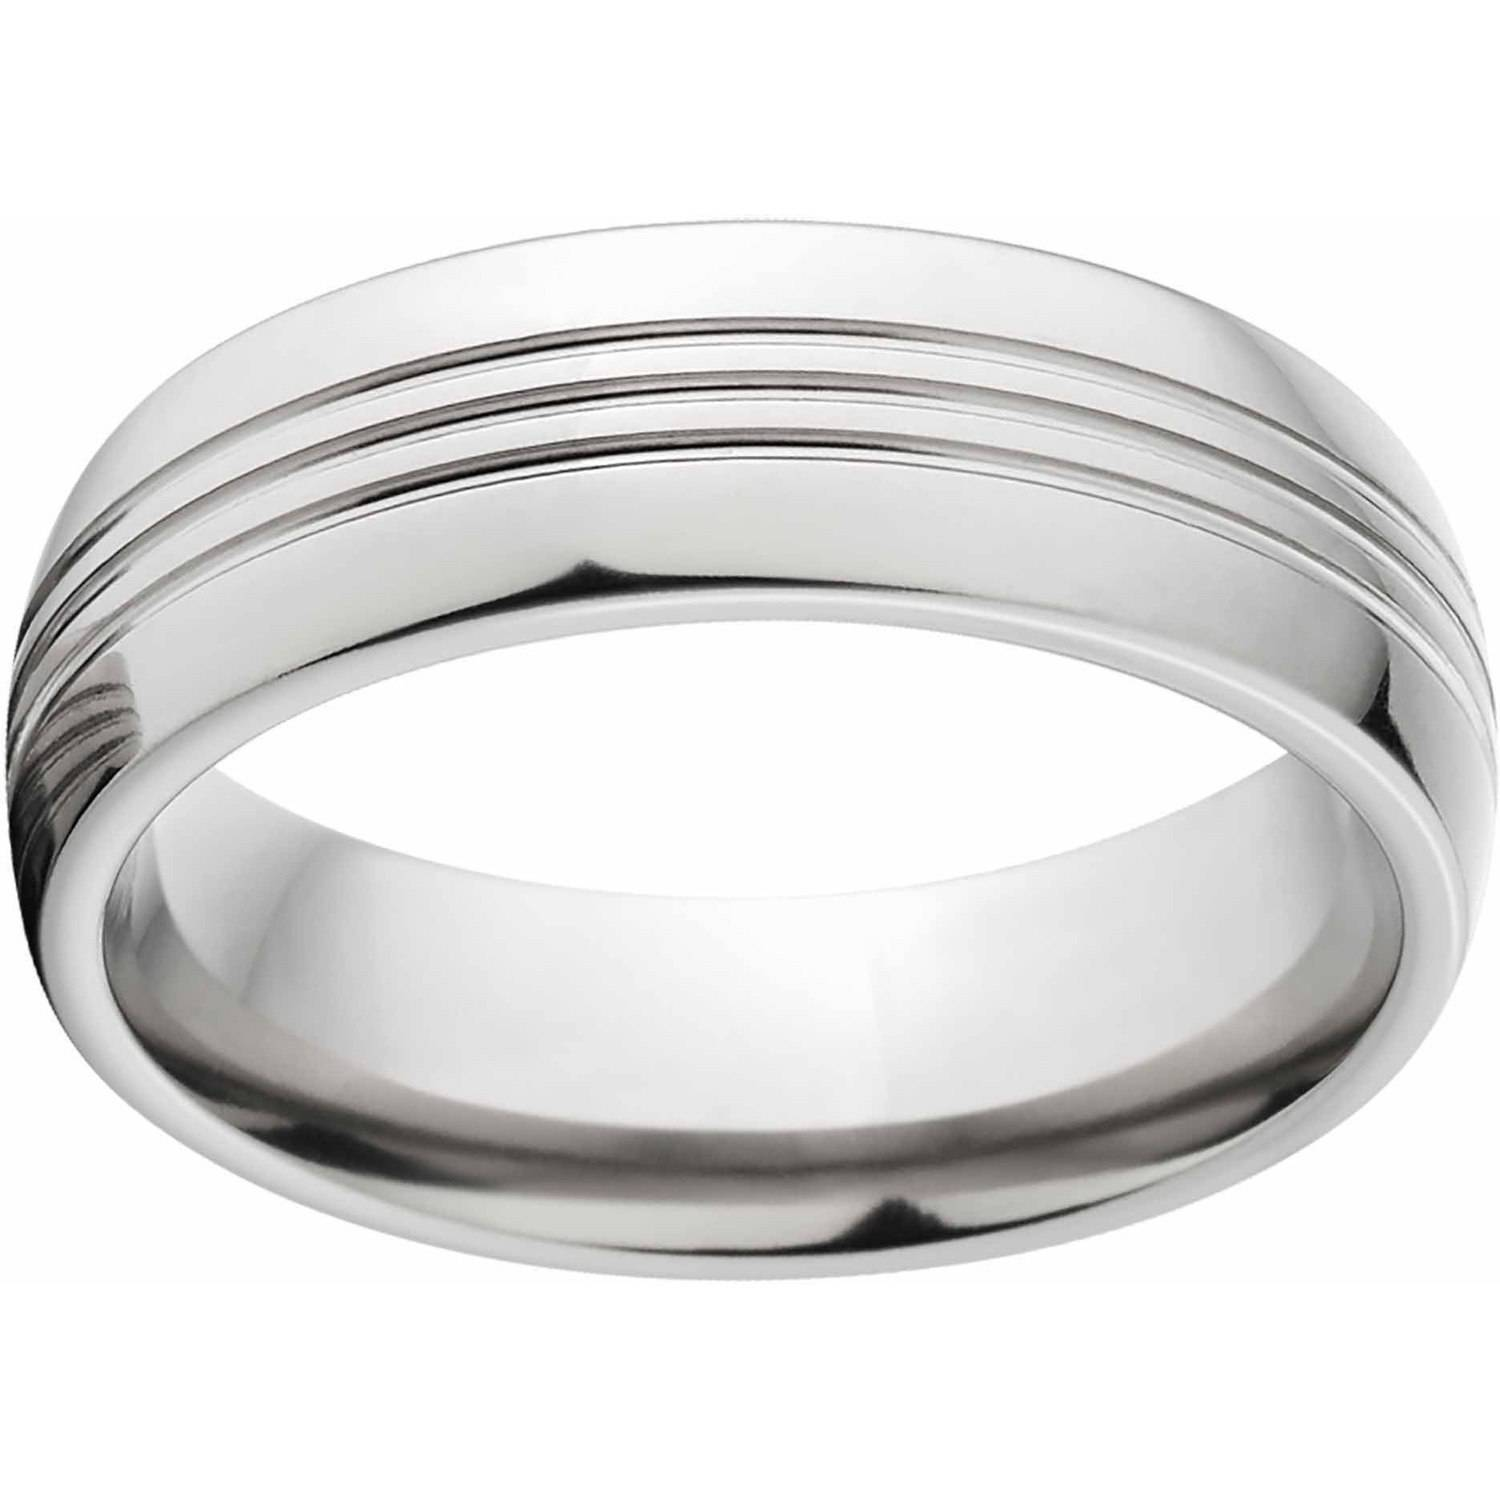 Polished 8mm Titanium Wedding Band with Comfort Fit Design